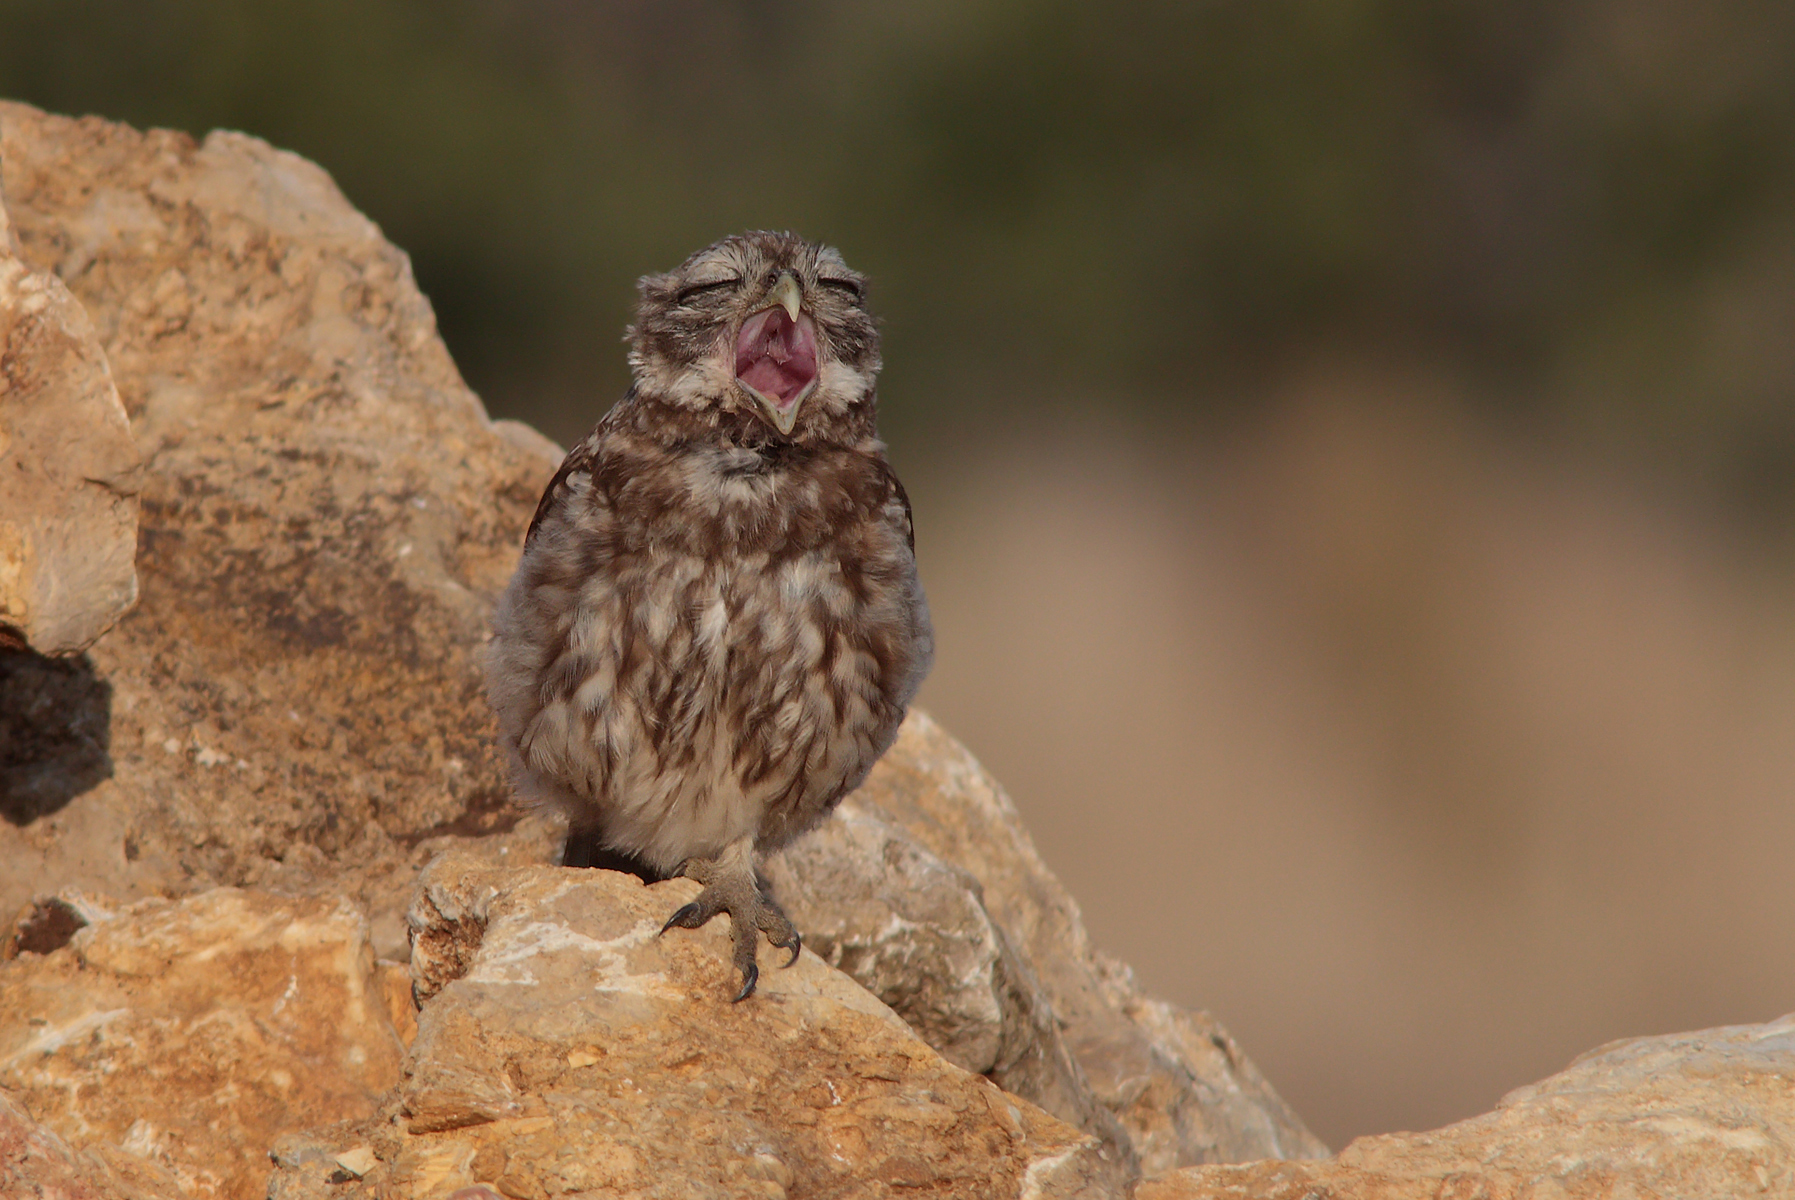 The yawn of the owl...